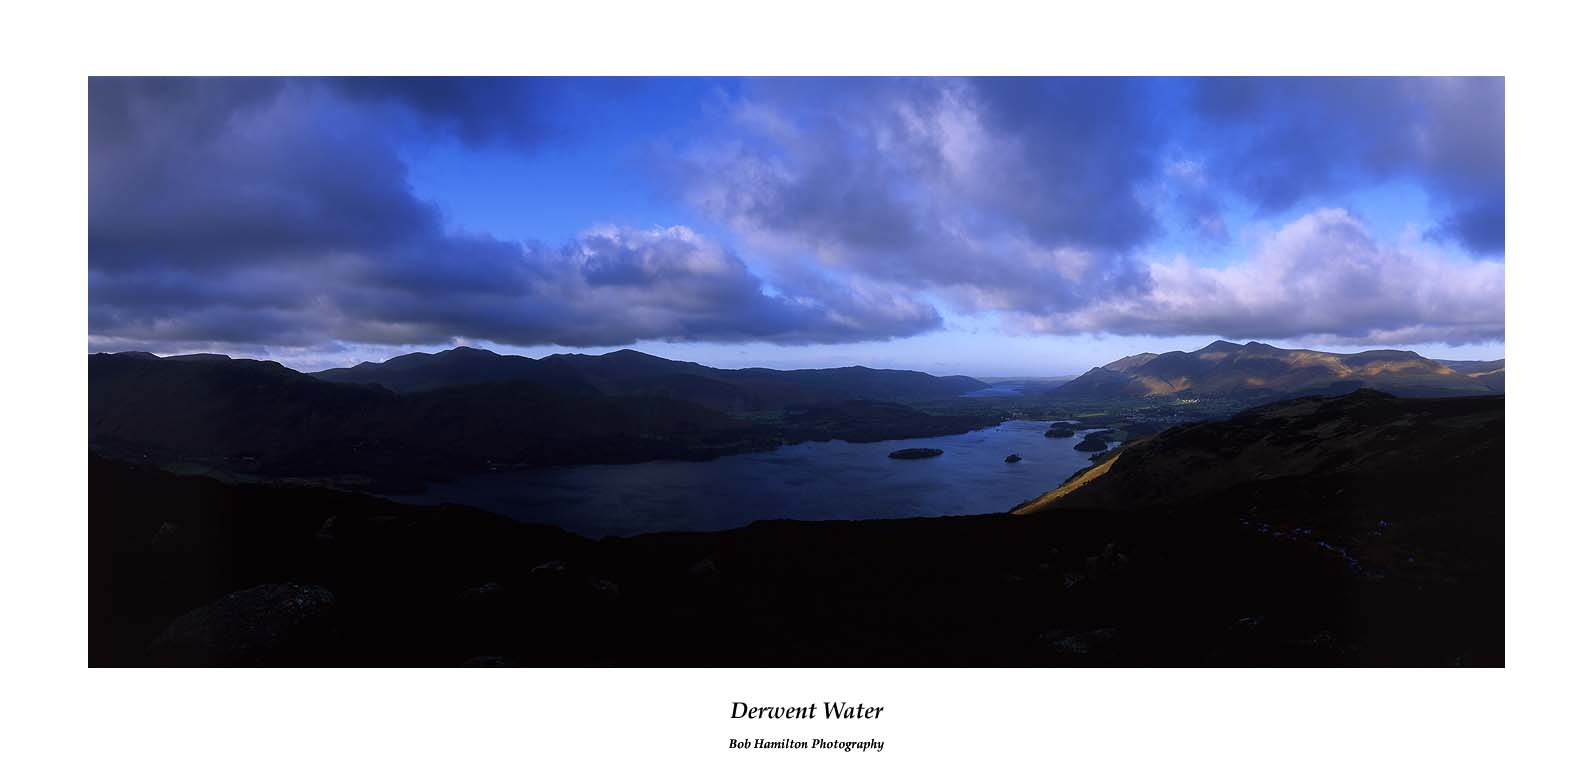 Derwent Water from High Seat